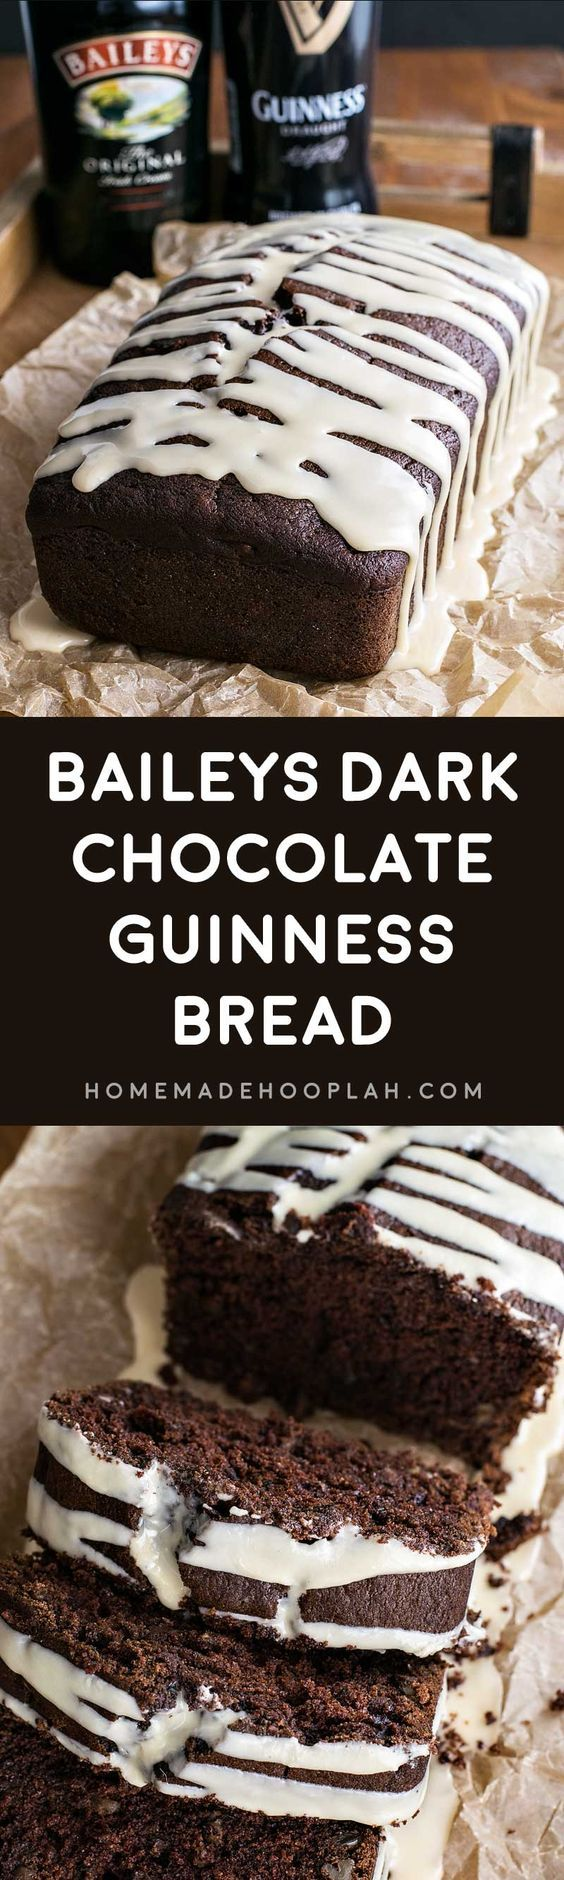 Baileys Dark Chocolate Guinness Bread Recipe via Homemade Hooplah - Rich and dark chocolate Guinness bread laced with chocolate chips and walnuts then frosted with a sweet Baileys glaze. #dessertbreads #neighborgifts #homemadegifts #foodgifts #breadrecipes #flavoredbreads #sweetbreads #holidaybread #bread #stpatricksdayrecipes #homemadebread #simplebreadrecipes #simplebread #simplerecipes